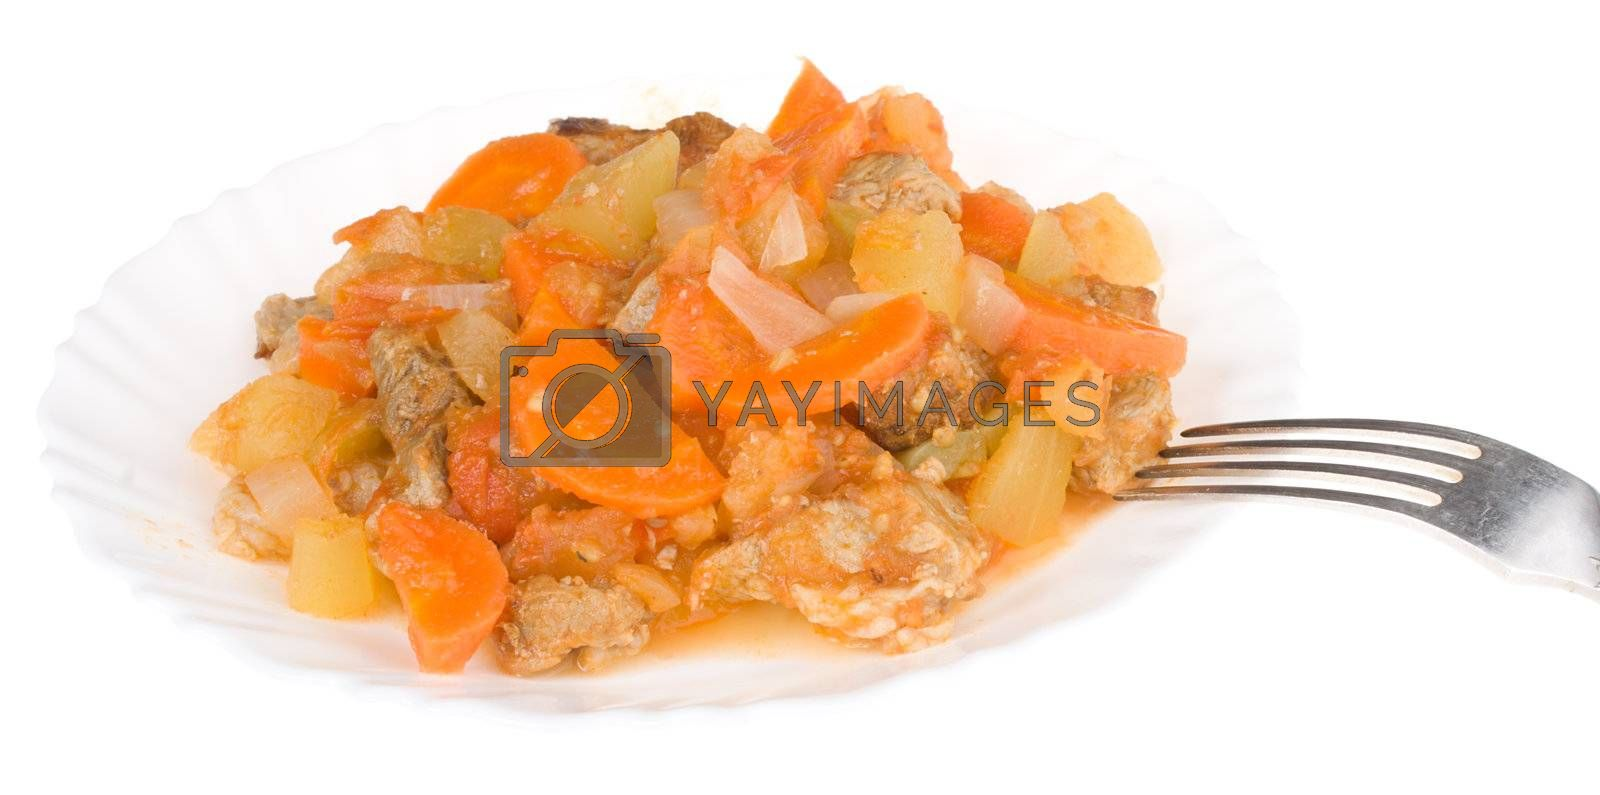 meat with vegetables on plate, isolated on white